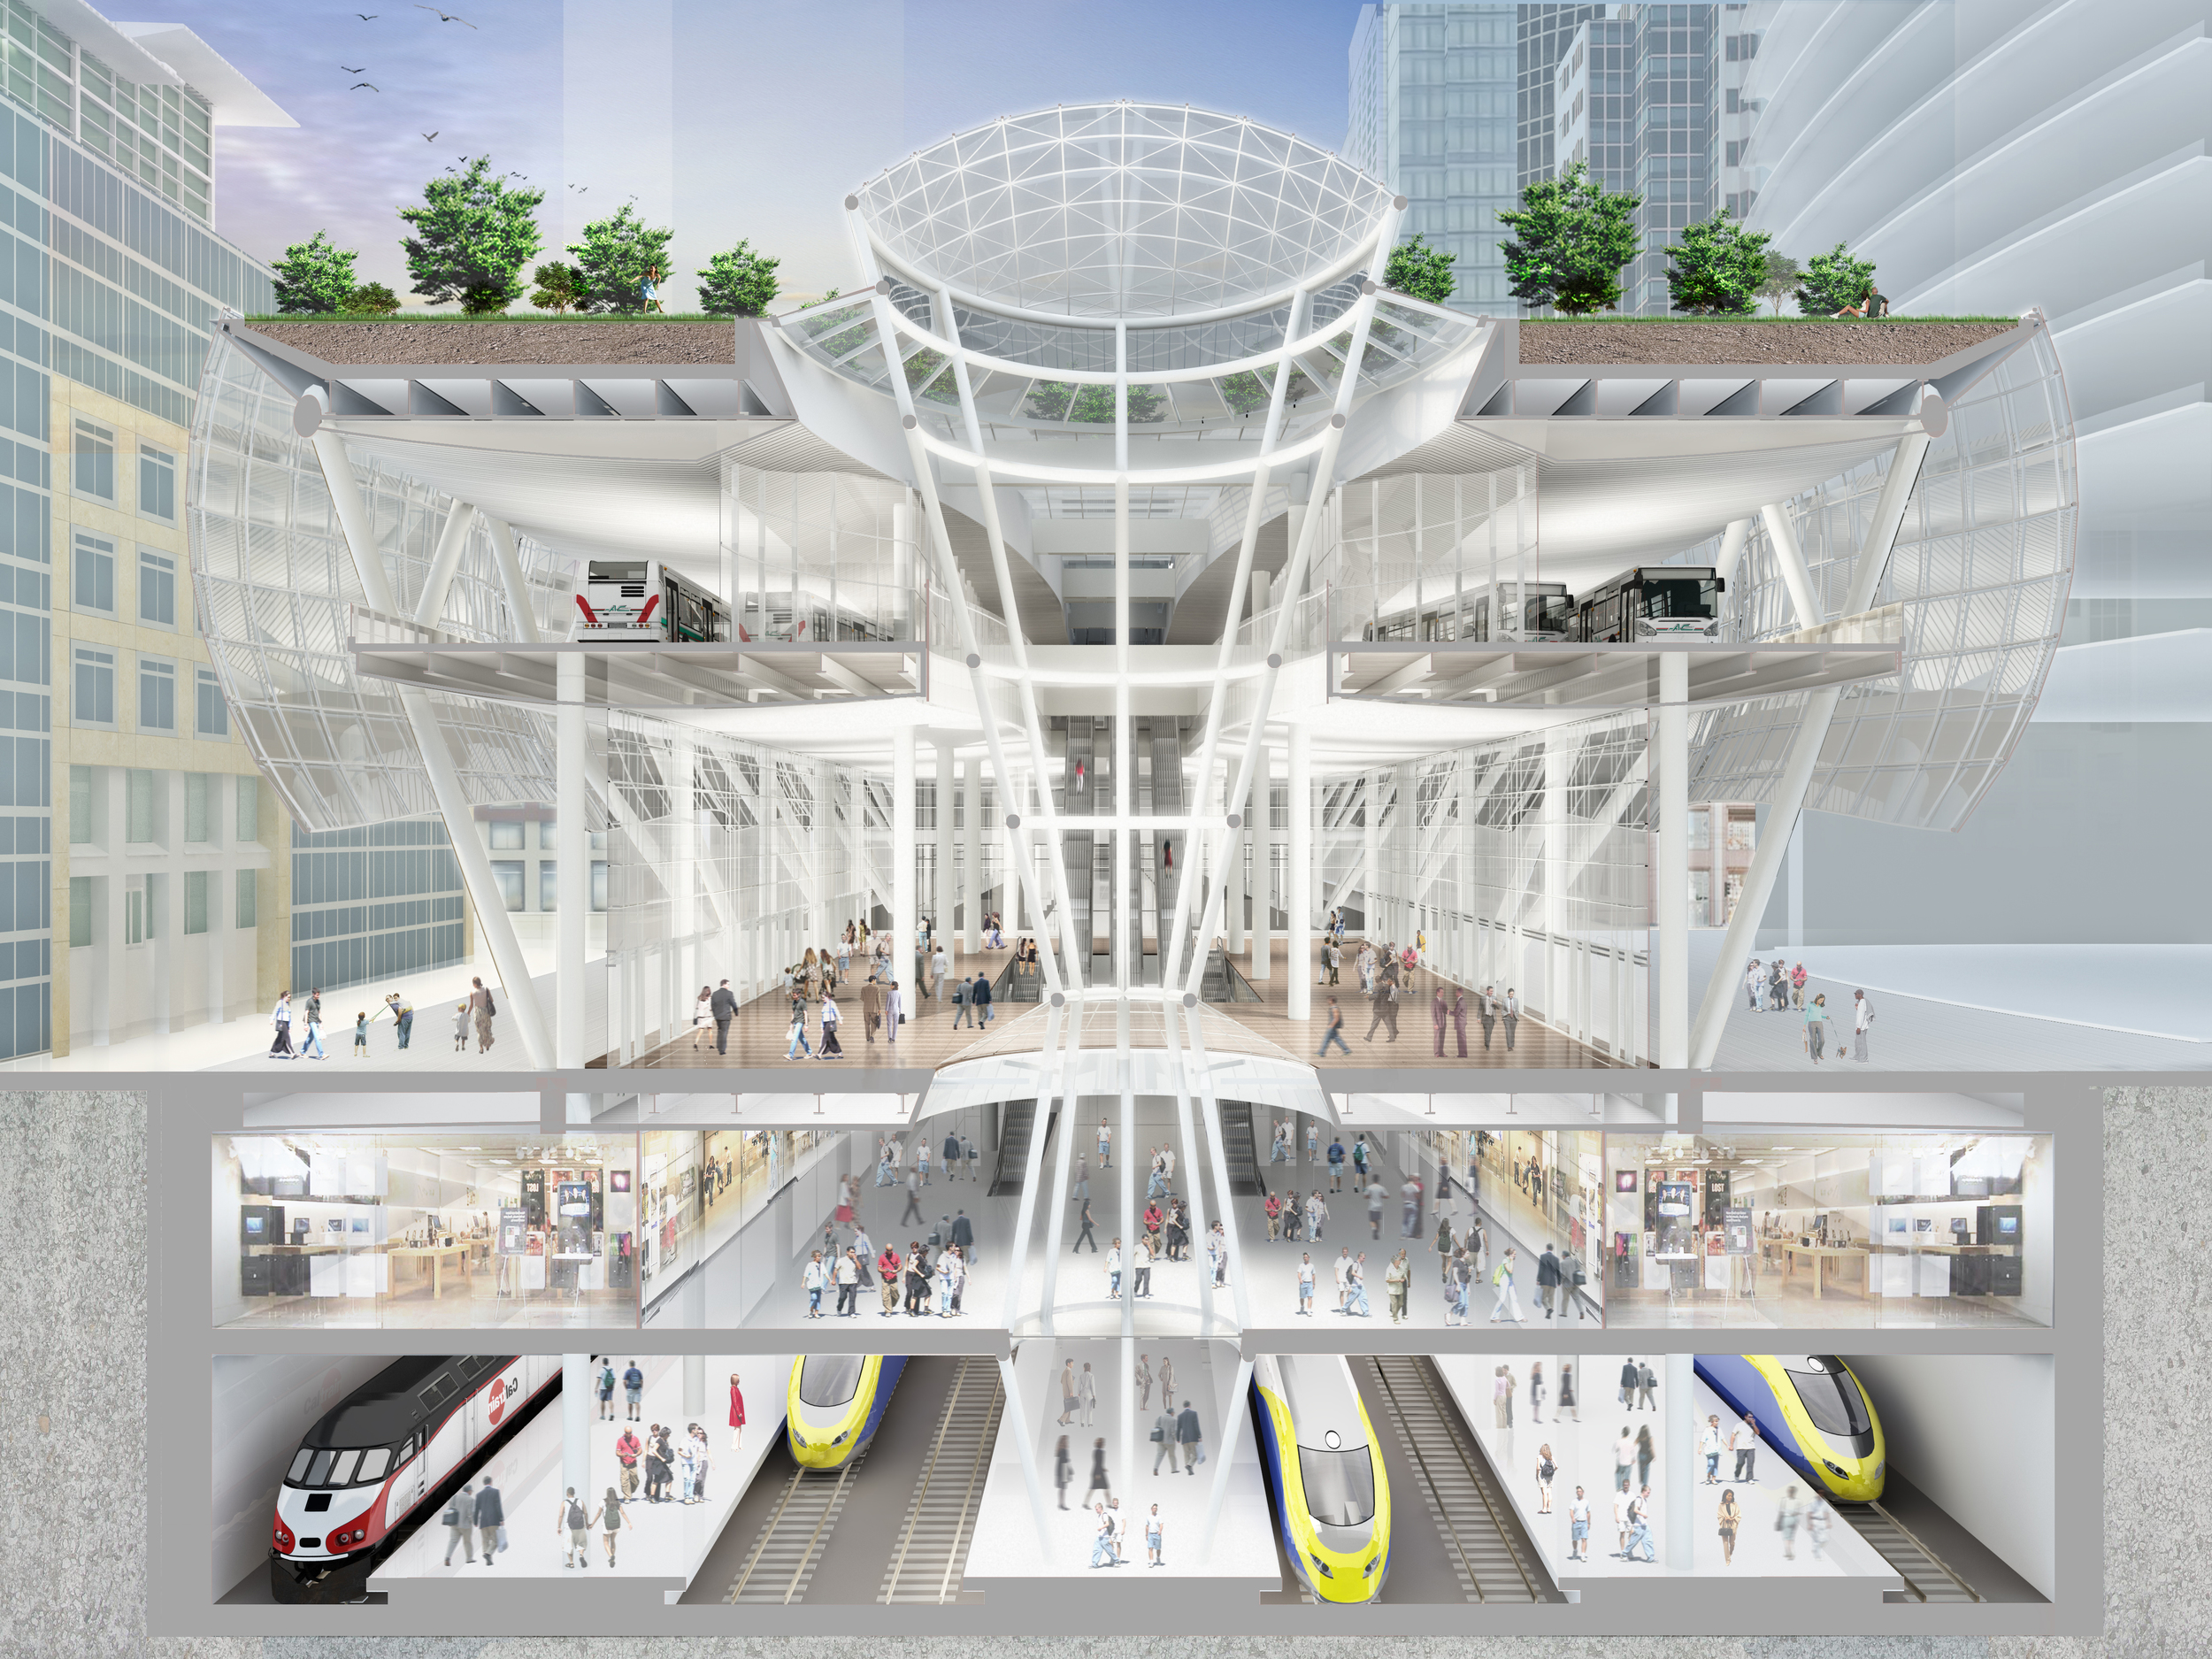 Transit Center Cross Section